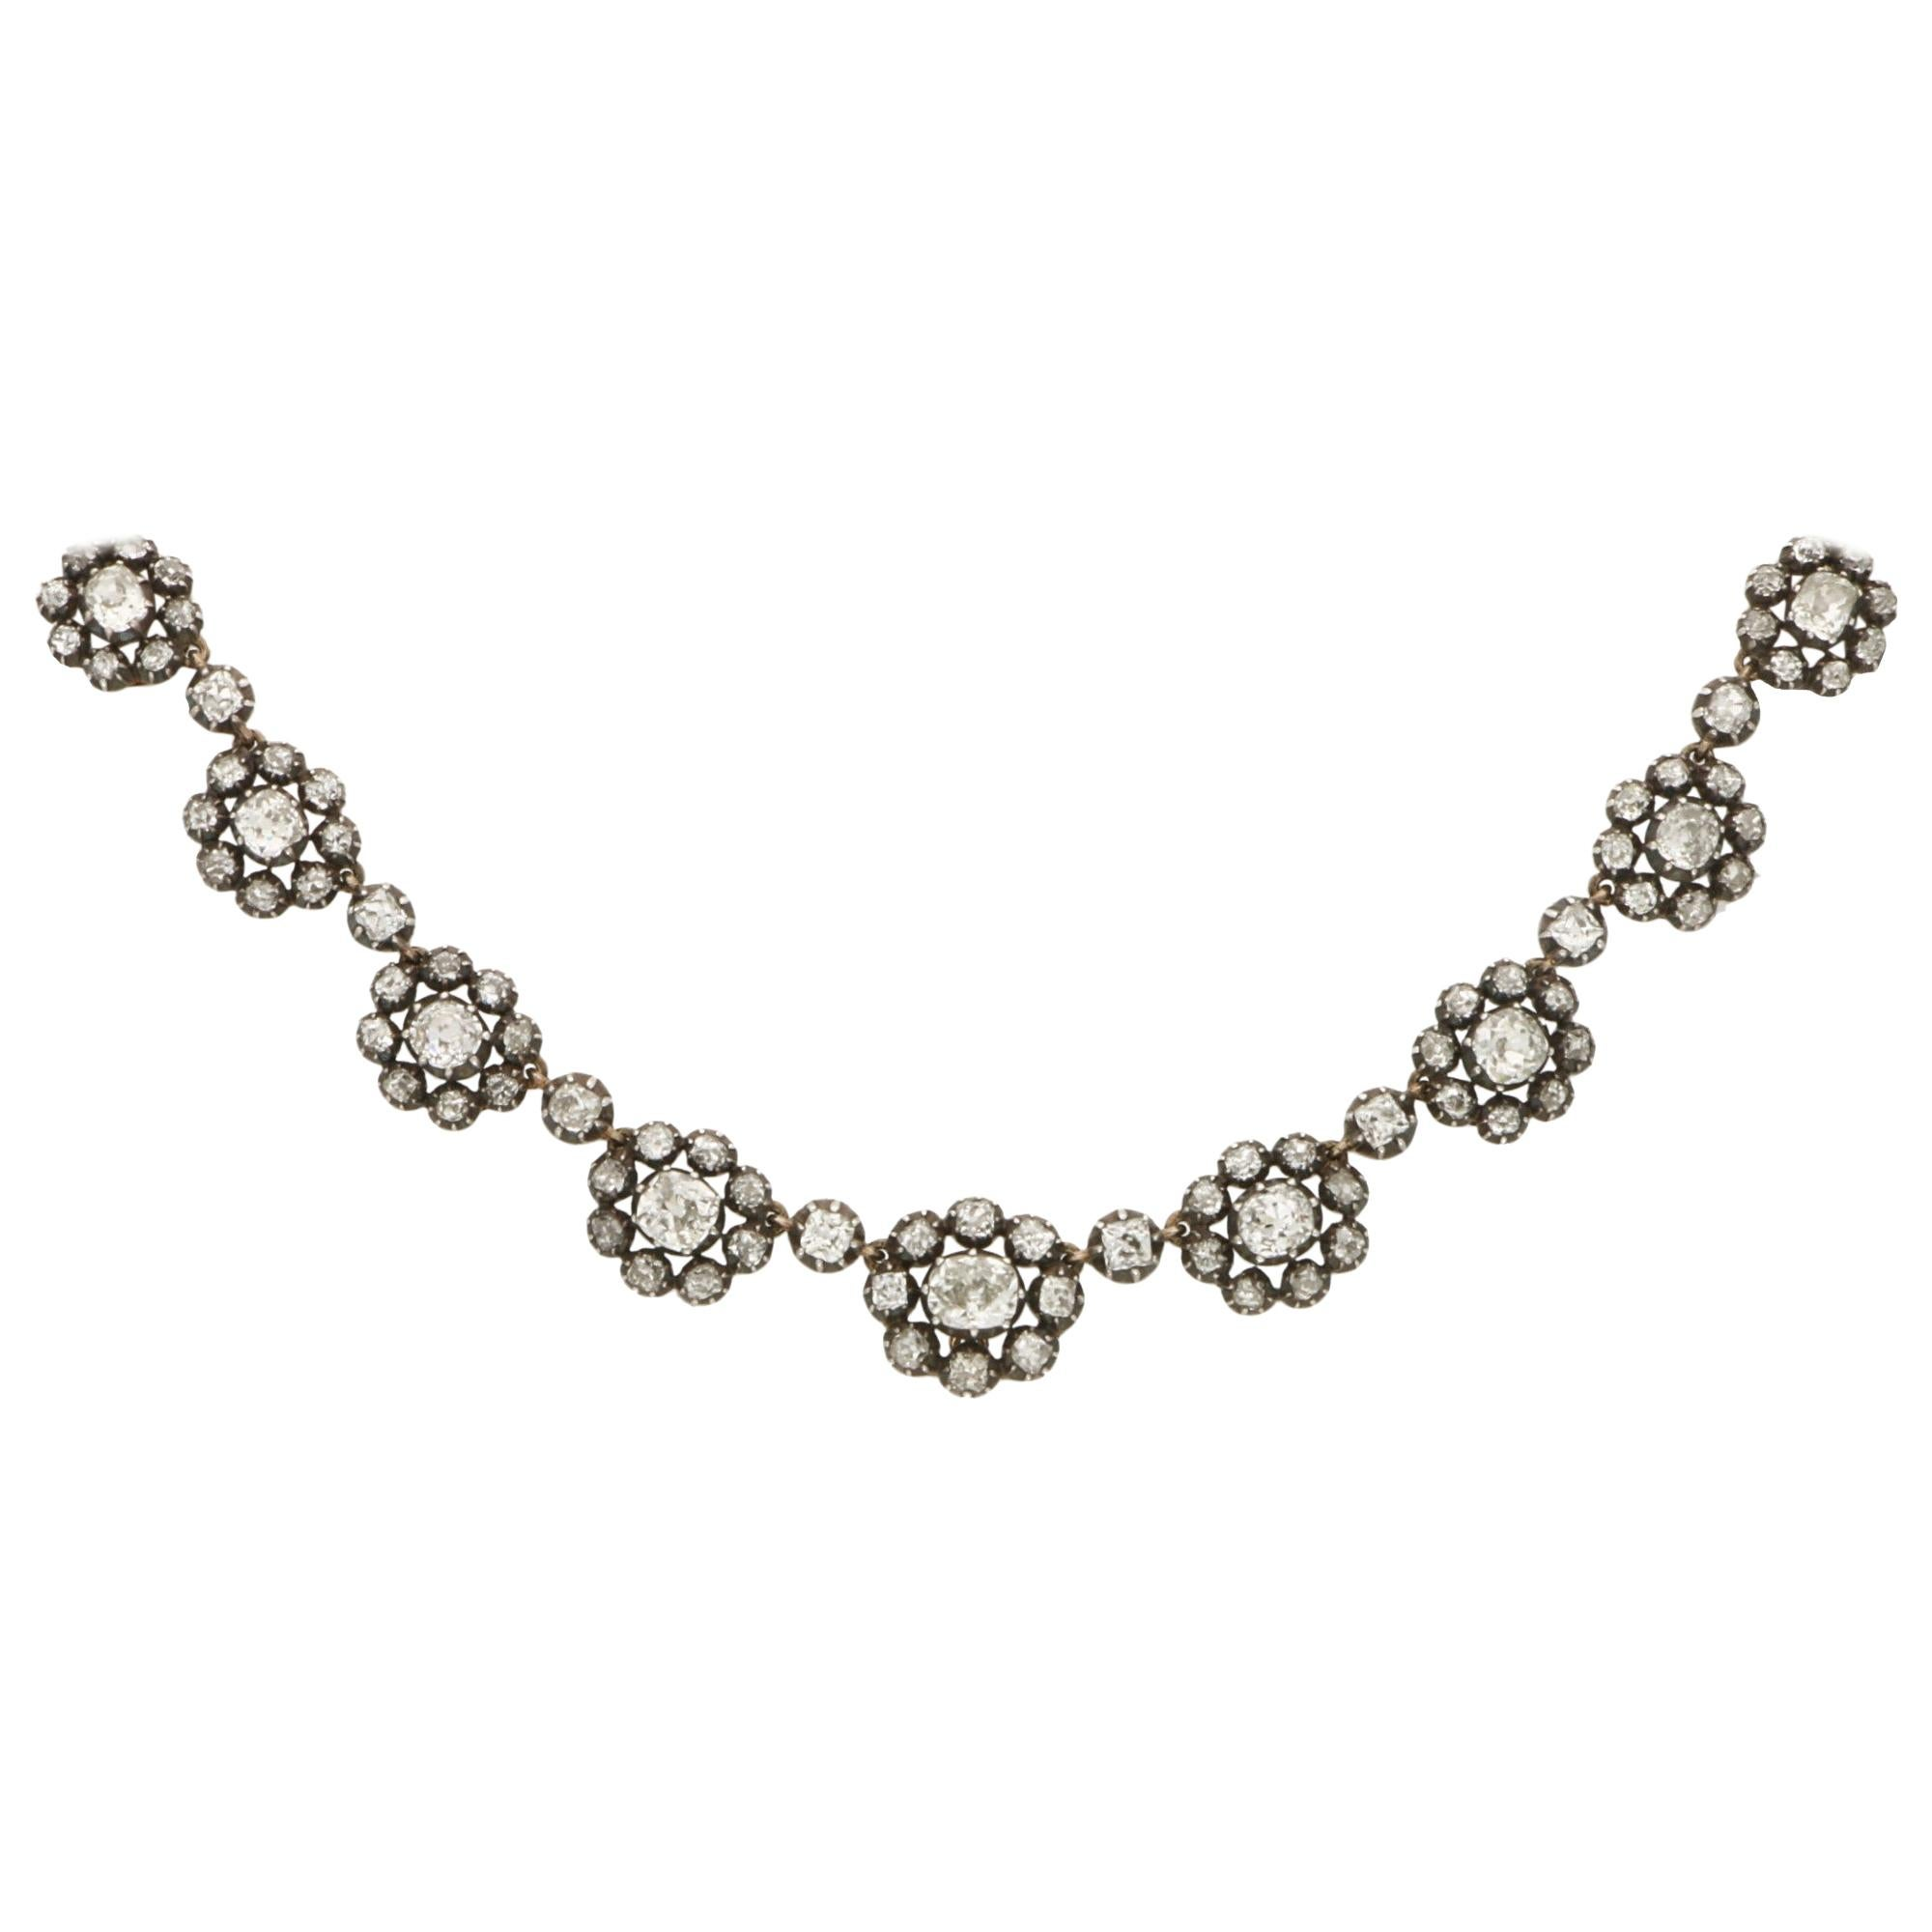 Victorian Diamond Choker Necklace in Silver on Gold